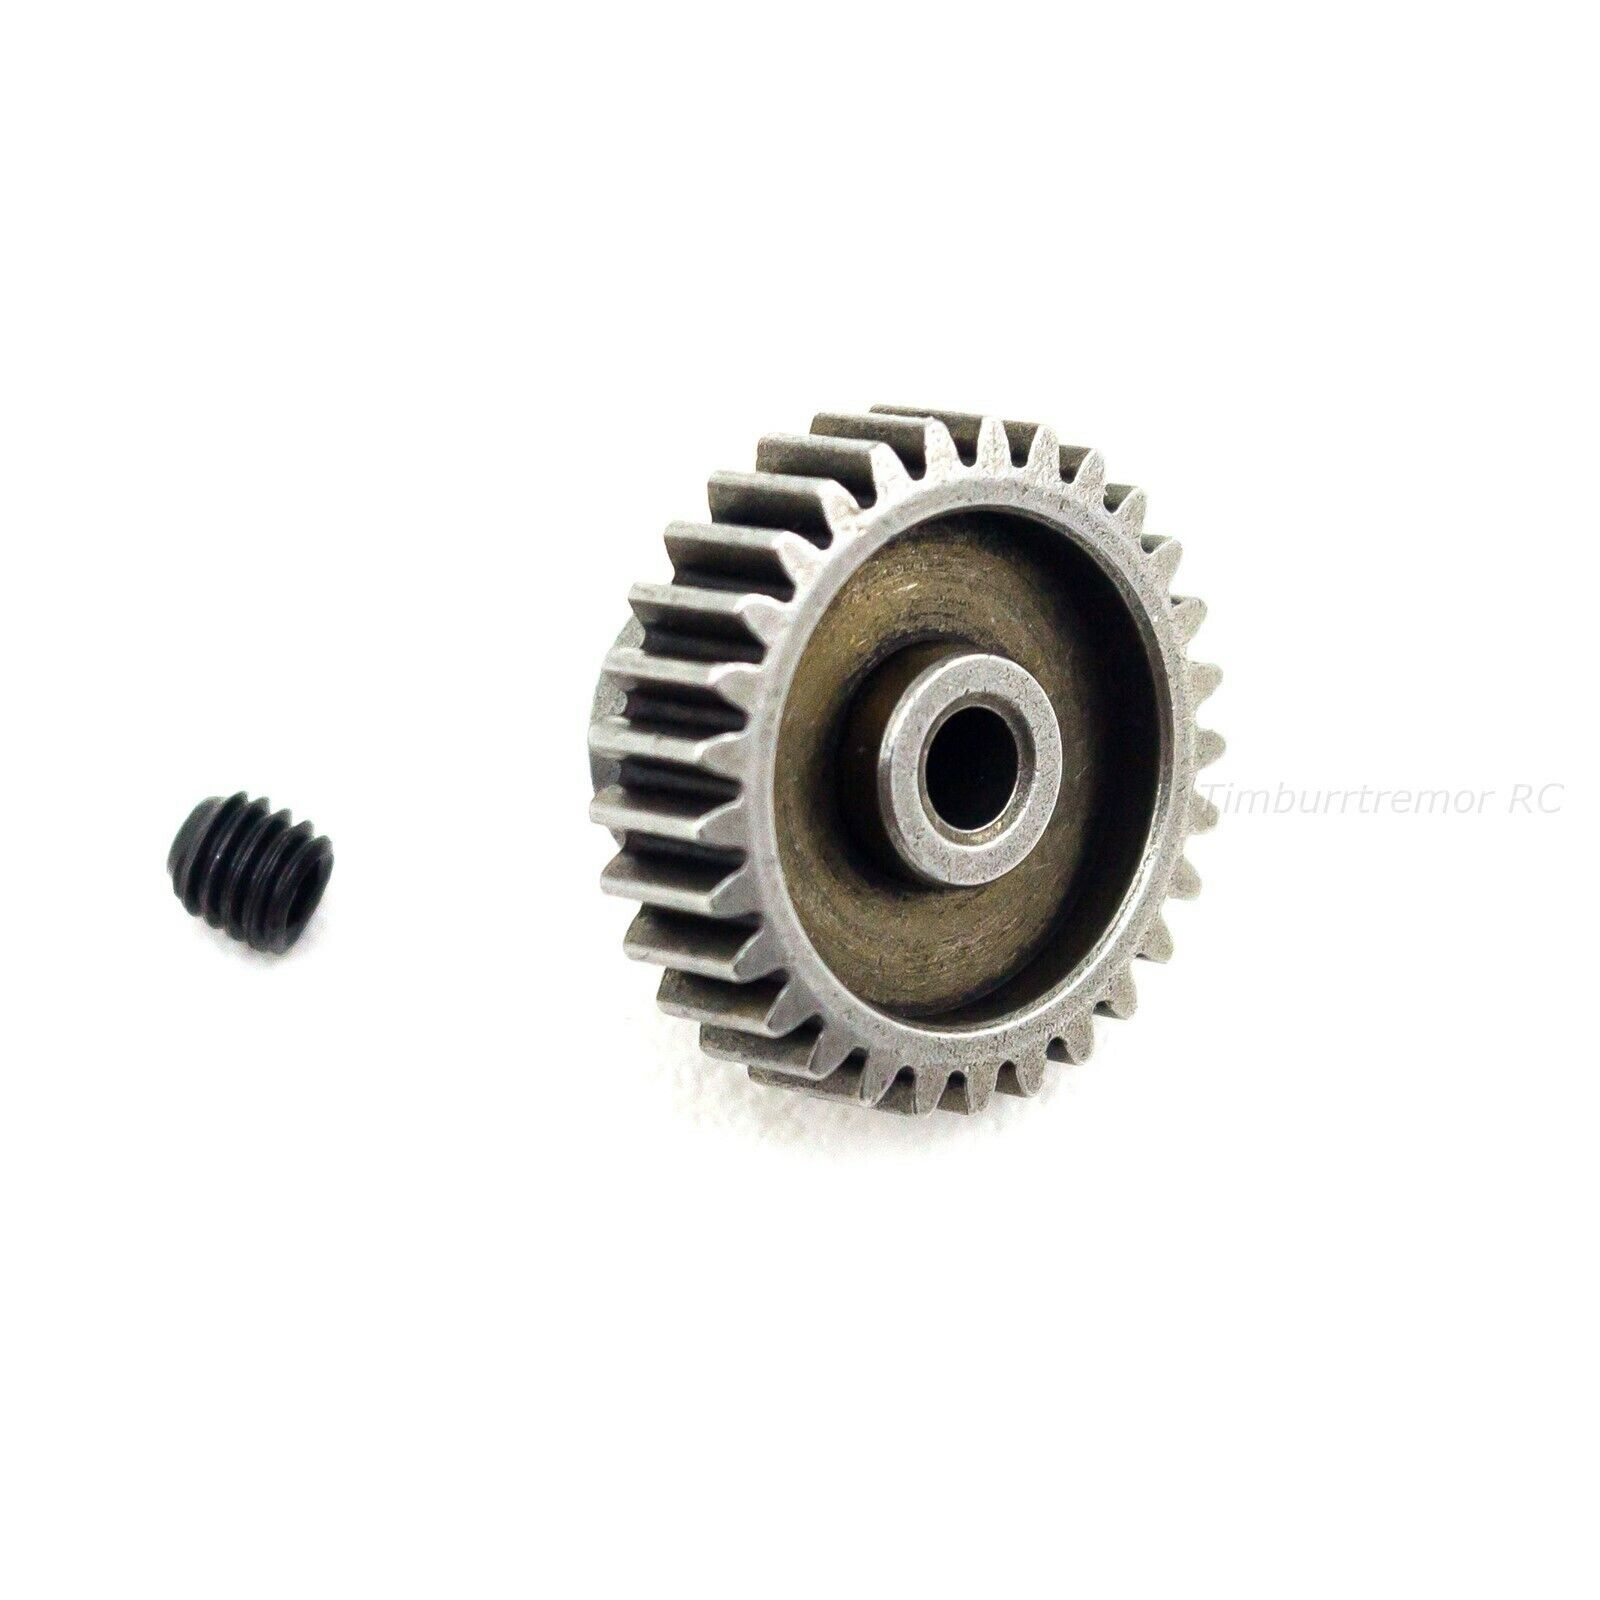 17T, .6 module RC 11119 Motor Gear Fit Redcat 1//10 Volcano-EPX Electric Truck